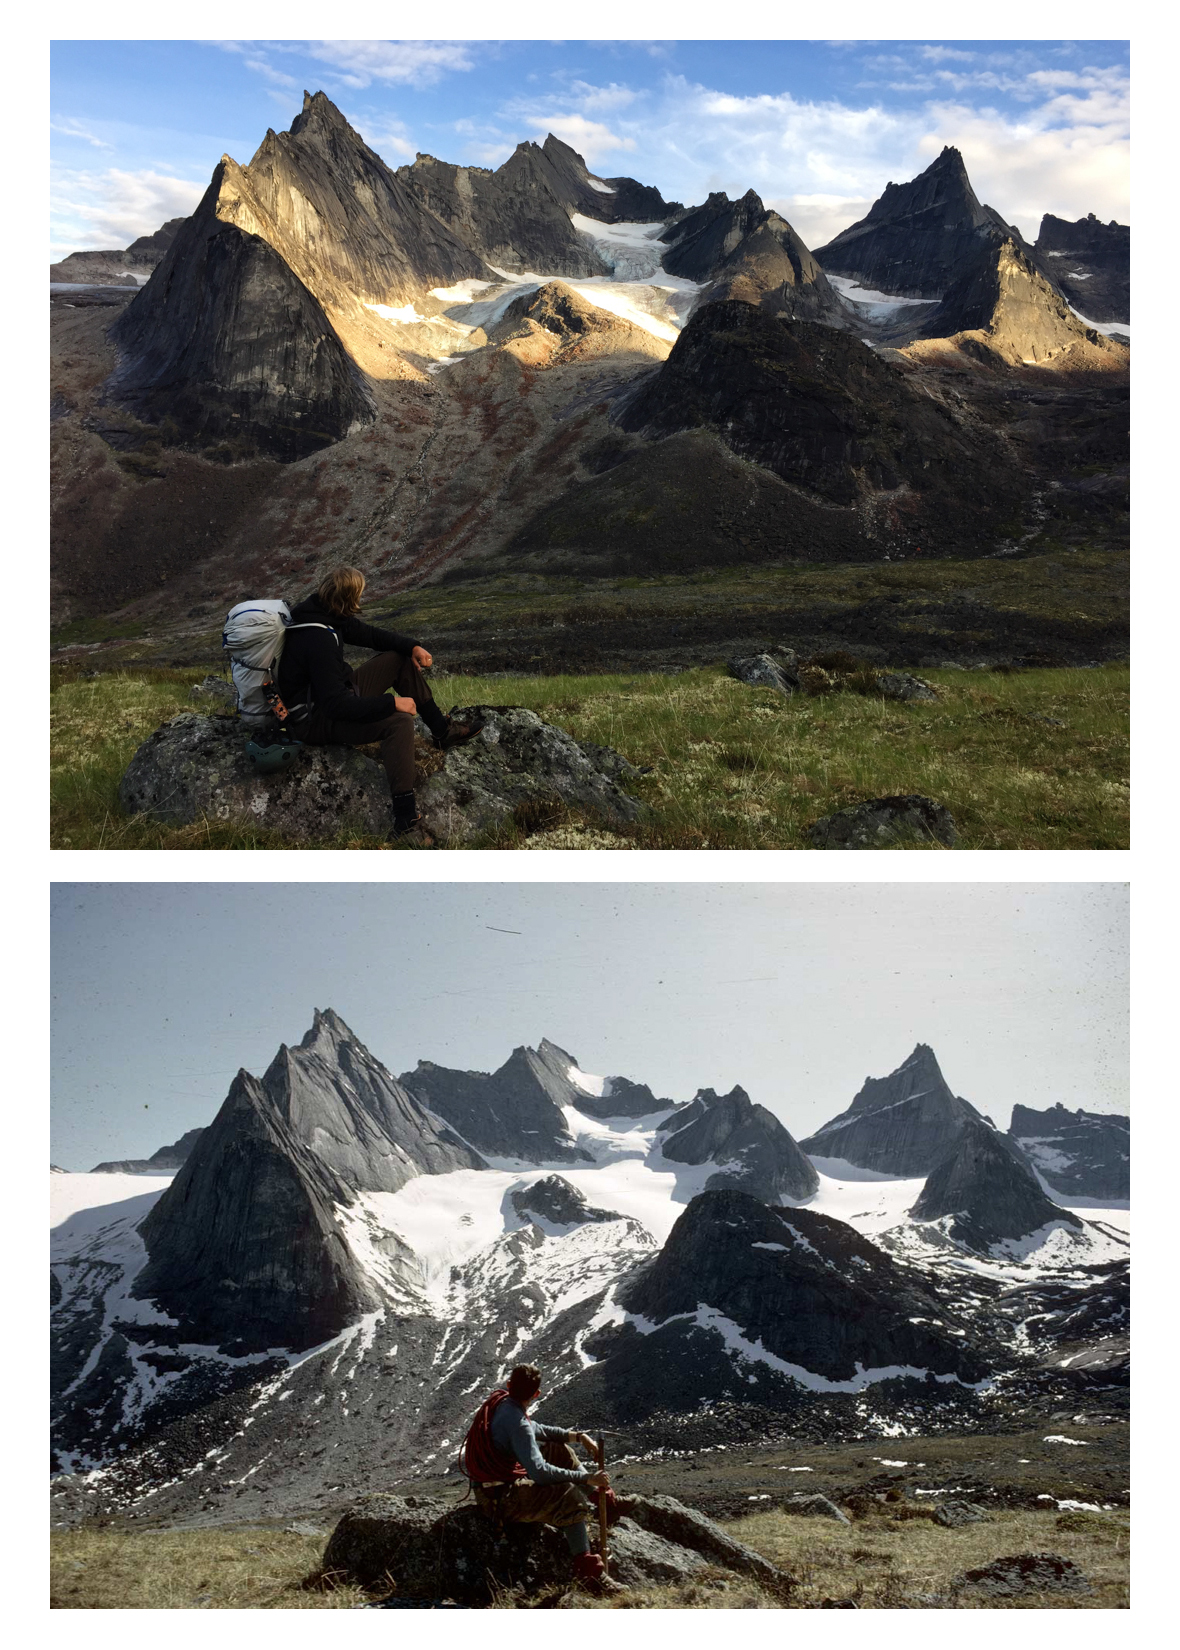 The Arrigetch Peaks have seen significant glacier recession and rockfall over the last 50 years. Details from photographs by Robley Williams Jr. (1964) and Stephanie Safdi (2015).